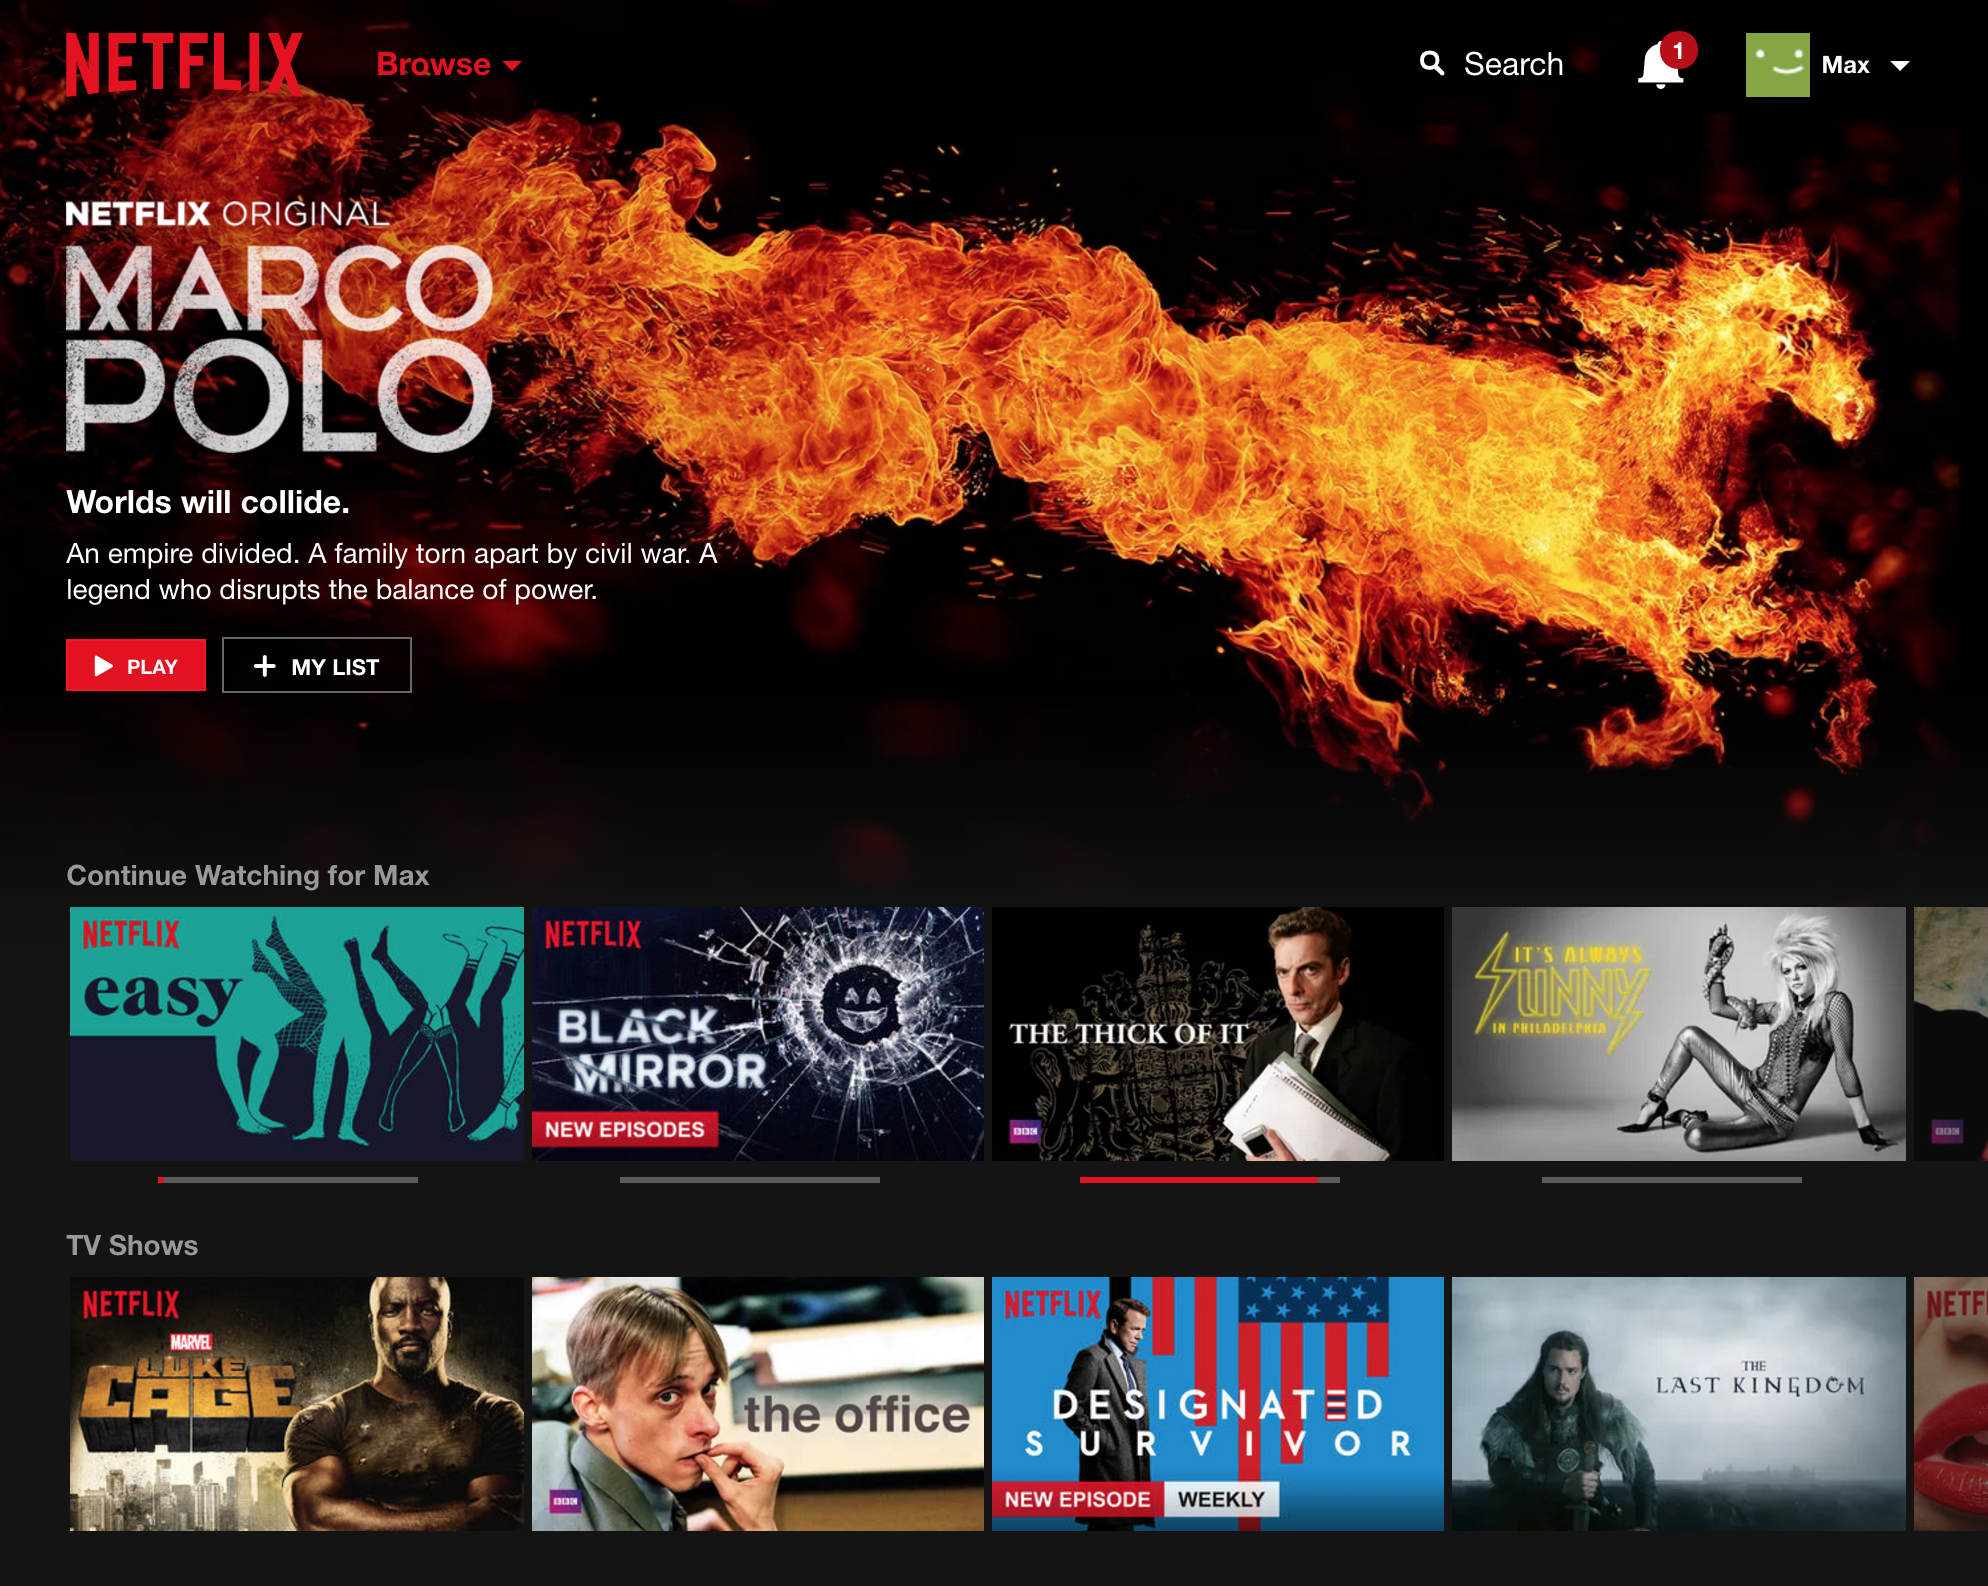 UK Netflix has about 3,000 titles, including more BBC and weekly shows.